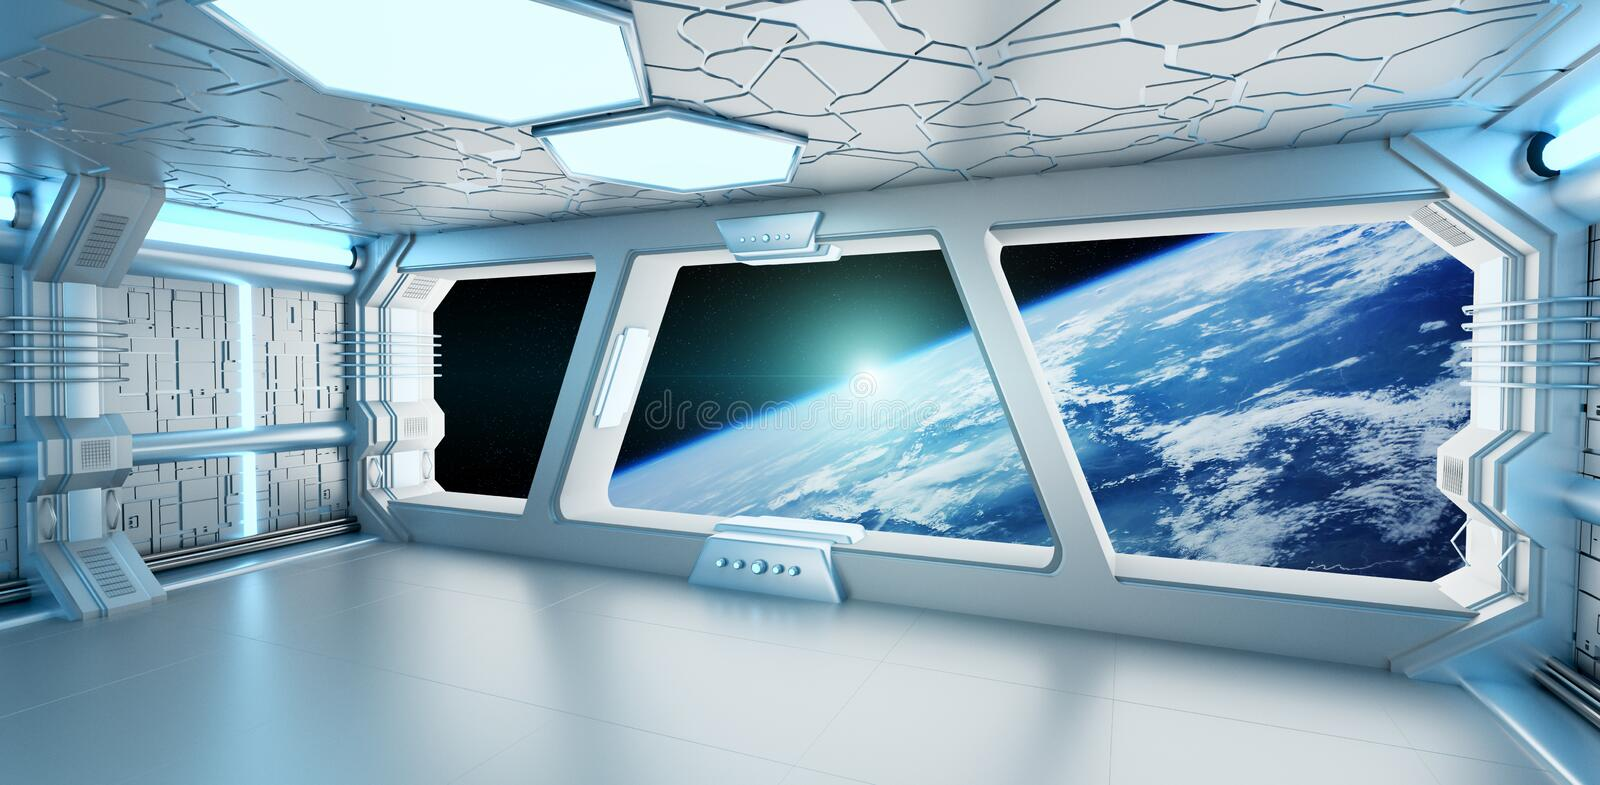 Awesome Download Spaceship Interior With View On The Planet Earth 3D Rendering El  Stock Image   Image